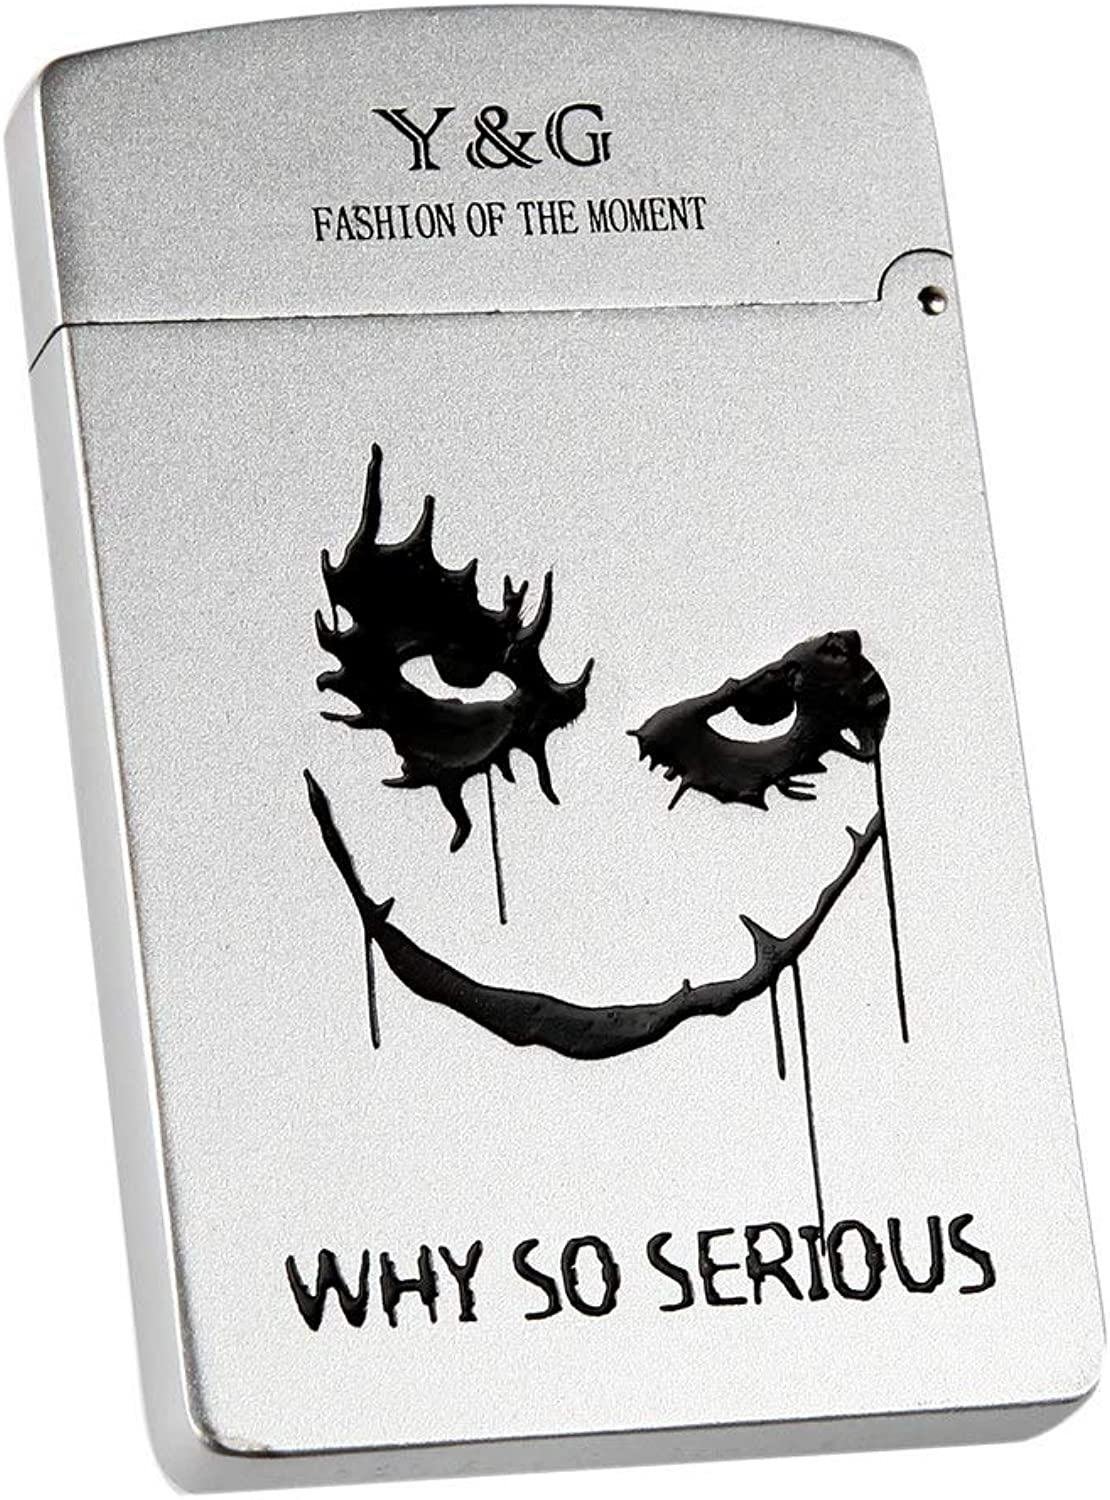 MC4002 Way So Serious Clown AlloyStainless steel Business Card Holders   Credit card Gift Ideas For Men By Y&G